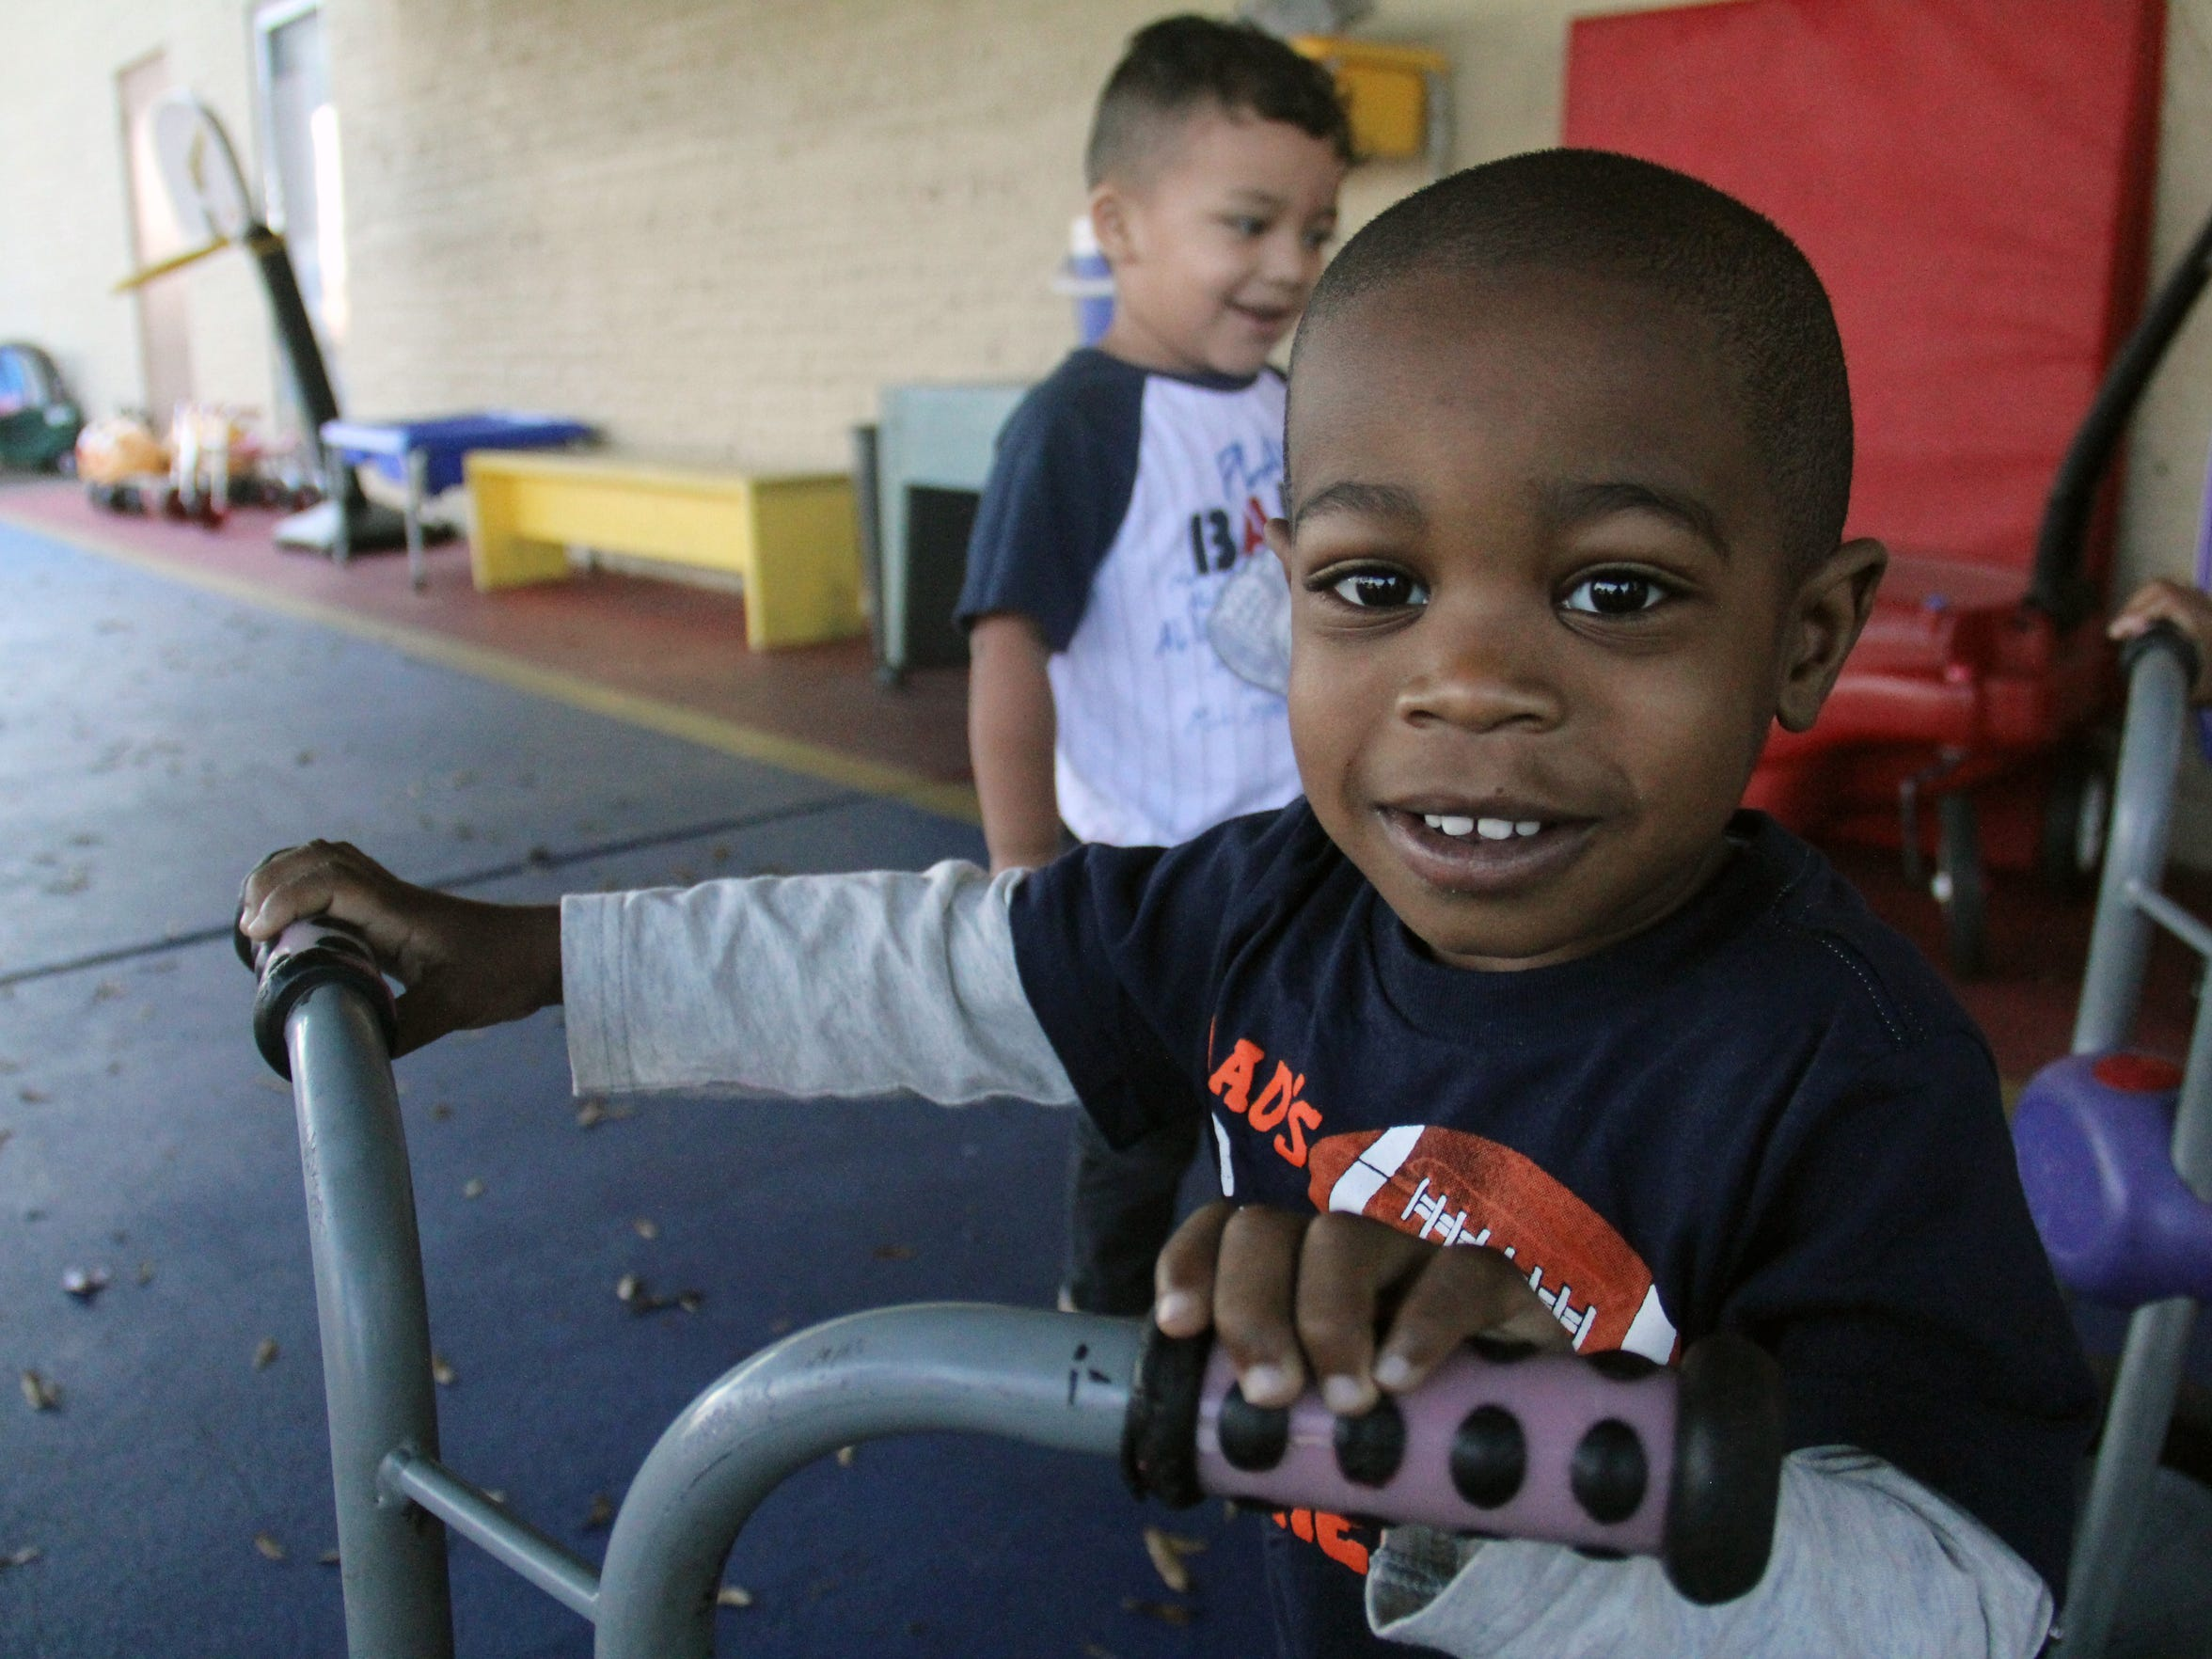 A child rides a bike on the playground at Global Connections Learning Center in Jackson.